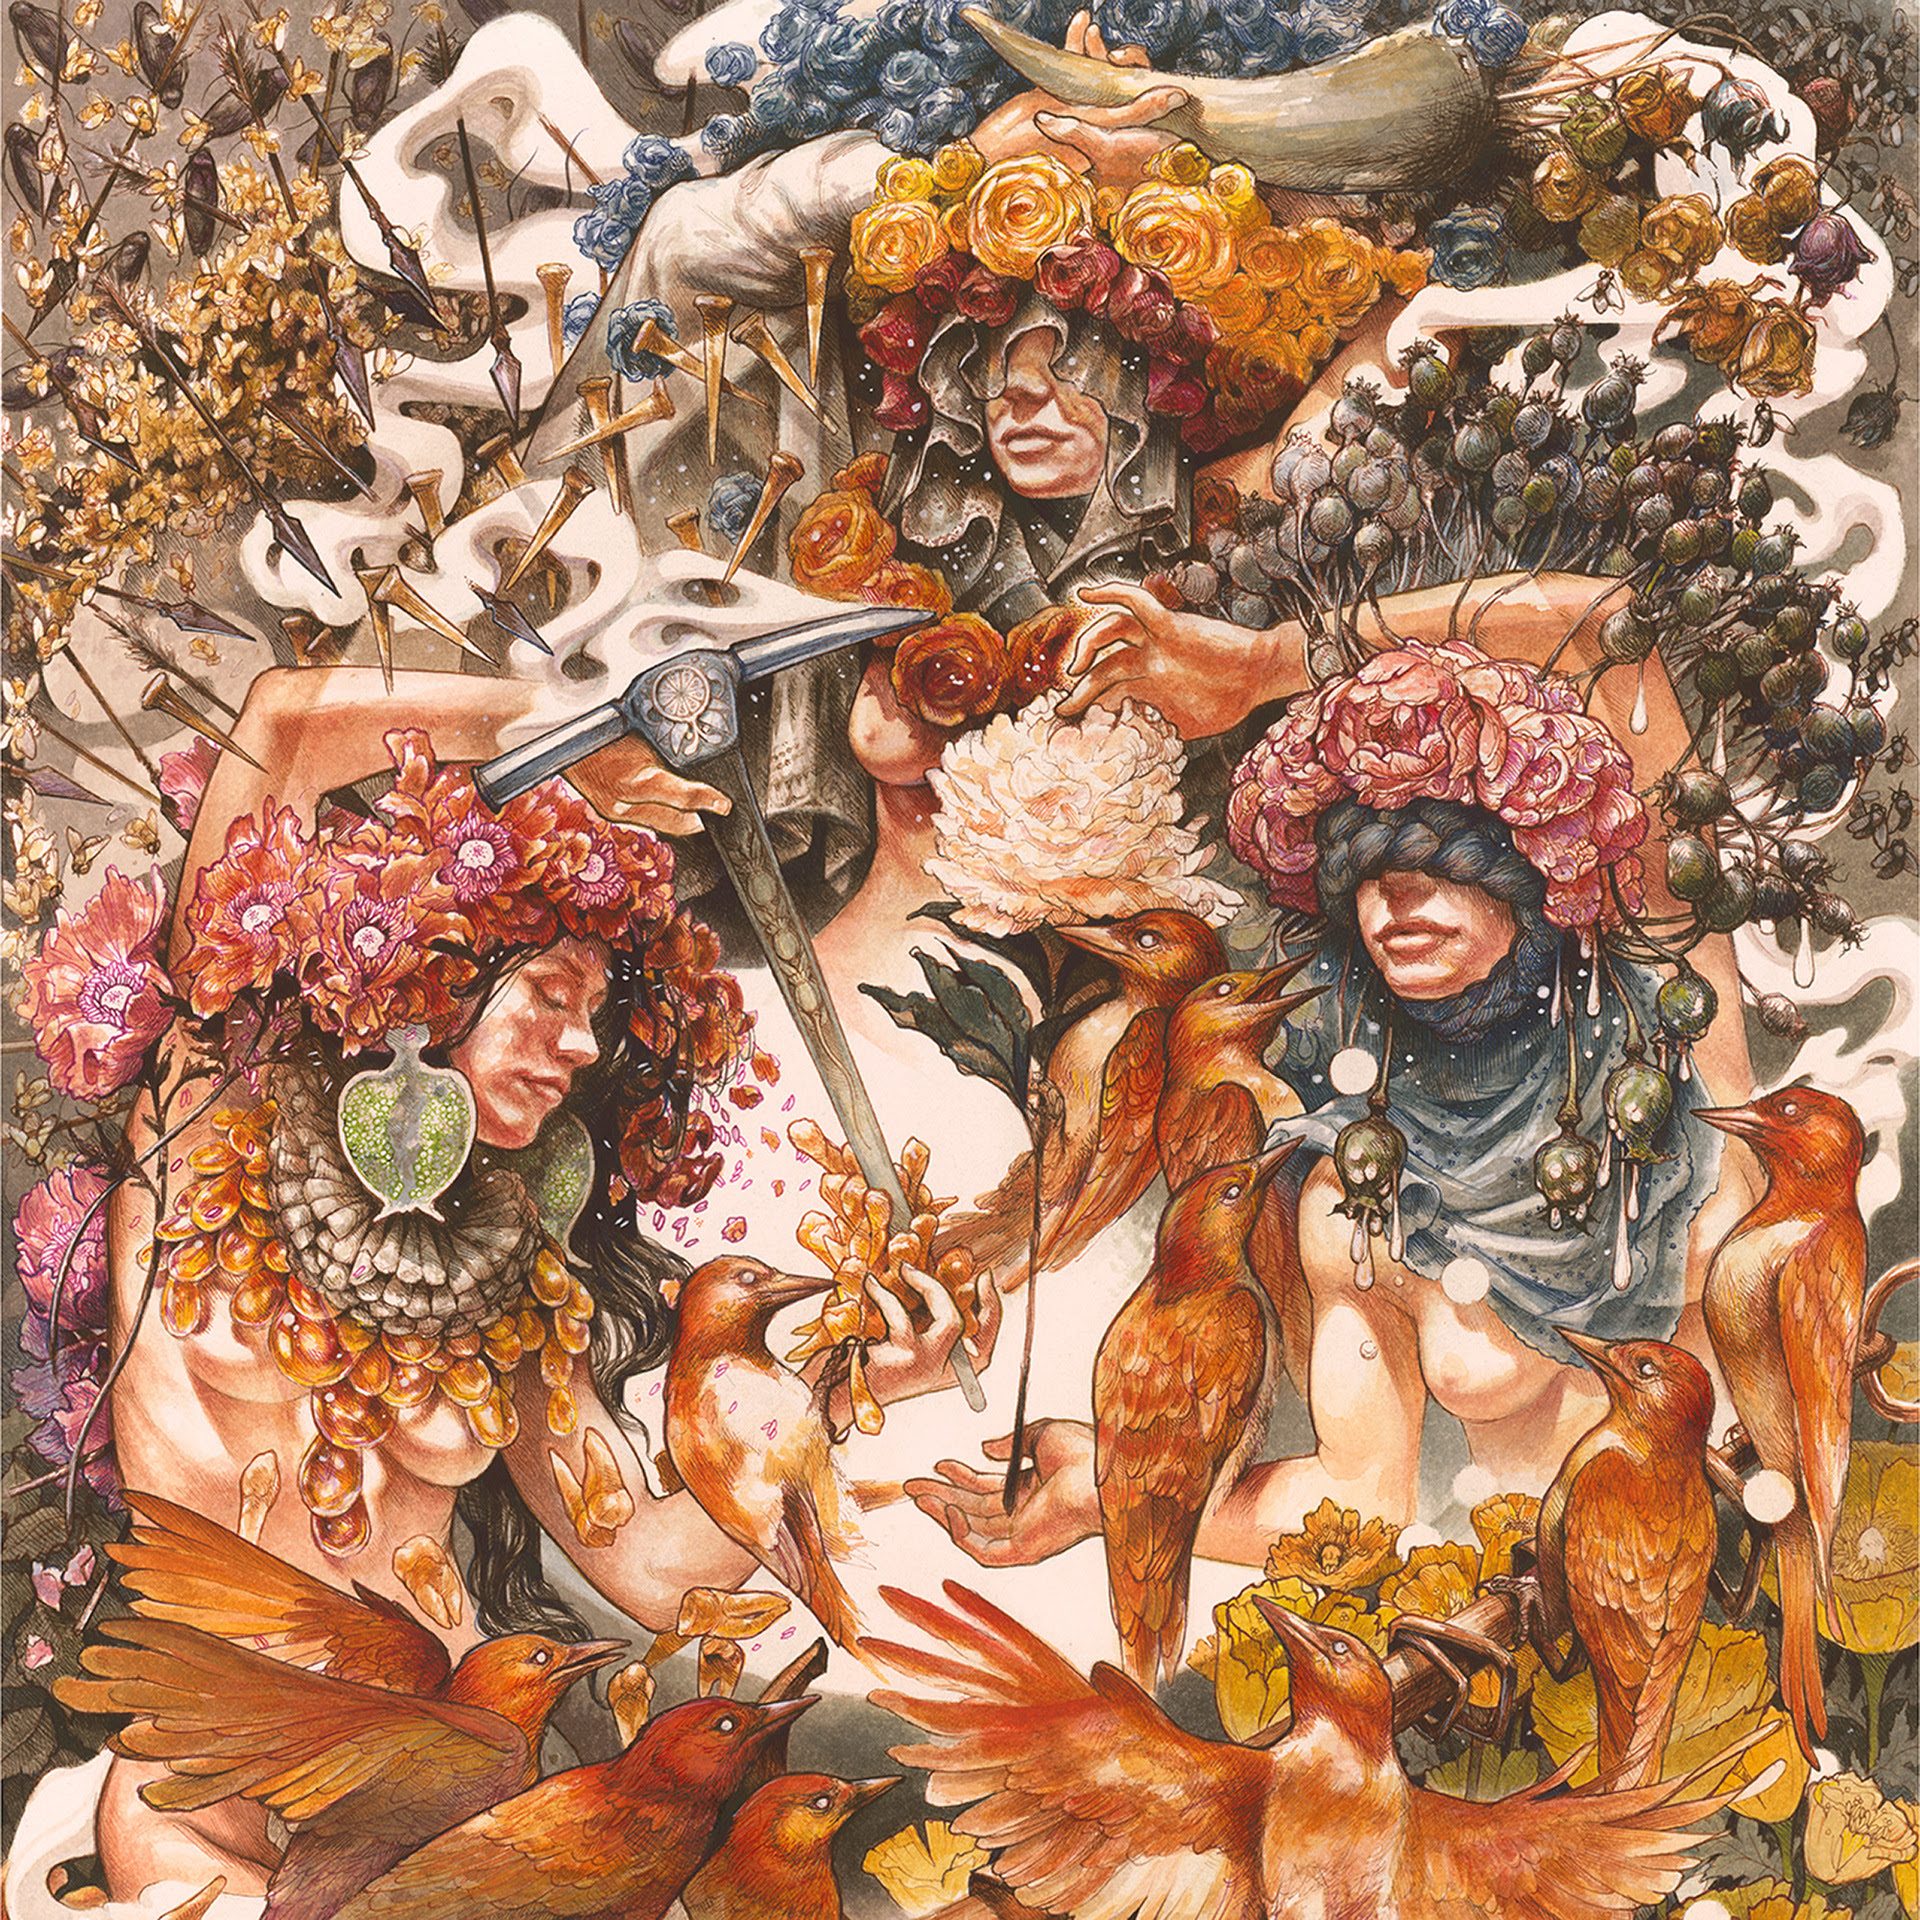 "Gold & Grey  album cover; original painting by John Baizley  Baroness release their eagerly-awaited new album,  Gold & Grey , on June 14 via Abraxan Hymns.  The band has simultaneously released a video for the song ""Borderlines"" ( https://youtu.be/tQX_oVVORFU ), which saw its live performance debut at Baroness's tour kick off last Friday in Houston.  ""Our goal is, was, and will always be to write increasingly superior, more honest and compelling songs, and to develop a more unique and challenging sound,"" offered Baroness founder, guitar player and vocalist John Baizley. ""I'm sure we have just finished our best, most adventurous album to date. We dug incredibly deep, challenged ourselves and recorded a record I'm positive we could never again replicate. I consider myself incredibly fortunate to know Sebastian, Nick and Gina as both my bandmates and my friends. They have pushed me to become a better songwriter, musician and vocalist. We're all extremely excited for this release, which includes quite a few 'firsts' for the band, and we're thrilled to be back on tour to play these psychotic songs for our fans. Expect some surprises.""  While  Gold & Grey  found the outfit once again working with  Purple  producer Dave Fridmann (The Flaming Lips, Mogwai), sequestering themselves at Fridmann's remote upstate New York Tarbox Road Studio, the 17-track album ushered in two significant changes: a decidedly different recording process and guitar player Gina Gleason's debut on a Baroness recording. The band, who tracked portions of the vocals, guitars and overdubs in Baizley's home-basement studio, another first for the band, eschewed their normal routine of entering the studio with meticulously detailed plans and instead opted for a looser, more improvisational approach that resulted in the band's most collaborative and emotionally evocative release to date.  ""On  Gold & Grey  we have taken some unexpected paths on a labyrinthine sonic adventure. We accepted sounds and styles that have not appeared on previous Baroness albums, and I'm excited to welcome our fans into our new lair,"" added drummer Sebastian Thomson.  ""Having the chance to create music without any preconceived boundaries was both liberating and intimidating,"" explains guitar player Gina Gleason. ""As we pushed past our fear and comfort zone, the four of us connected in a way that allowed us to create freely, uplift one another and build the unique sonic world that is  Gold & Grey . As a longtime Baroness listener, it is exciting to have created something new while still maintaining a deep love and understanding of the band's roots. To say that the making of this record was quite a journey would be an understatement. We are beyond excited to share this experience and music with everyone!""  Baroness tour dates (co-headline w/Deafheaven; Zeal & Ardor open on all dates):  March 14 Anaheim, CA House of Blues Anaheim  March 16 Berkeley, CA The UC Theatre  March 18 Portland, OR Roseland Theater  March 19 Seattle, WA The Showbox  March 20 Vancouver, BC Vogue Theatre  March 22 Edmonton, AB Union Hall  March 23 Calgary, AB The Palace Theatre  March 24 Spokane, WA Knitting Factory  March 26 Salt Lake City, UT The Complex  March 27 Denver, CO The Ogden Theater  March 29 Minneapolis, MN Skyway Theatre  March 30 Madison, WI The Sylvee  March 31 Chicago, IL Riviera Theatre  April 2 Toronto, ON Danforth Music Hall  April 3 Montreal, QC Corona Theatre  April 5 Sayreville, NJ Starland Ballroom  April 6 Worcester, MA The Palladium  April 7 Albany, NY Upstate Concert Hall  April 9 Cleveland, OH Agora Theater  April 10 Silver Spring, MD The Fillmore  April 12 New York, NY Terminal 5  April 13 Philadelphia, PA Decibel Metal & Beer Fest (The Fillmore Philadelphia)"